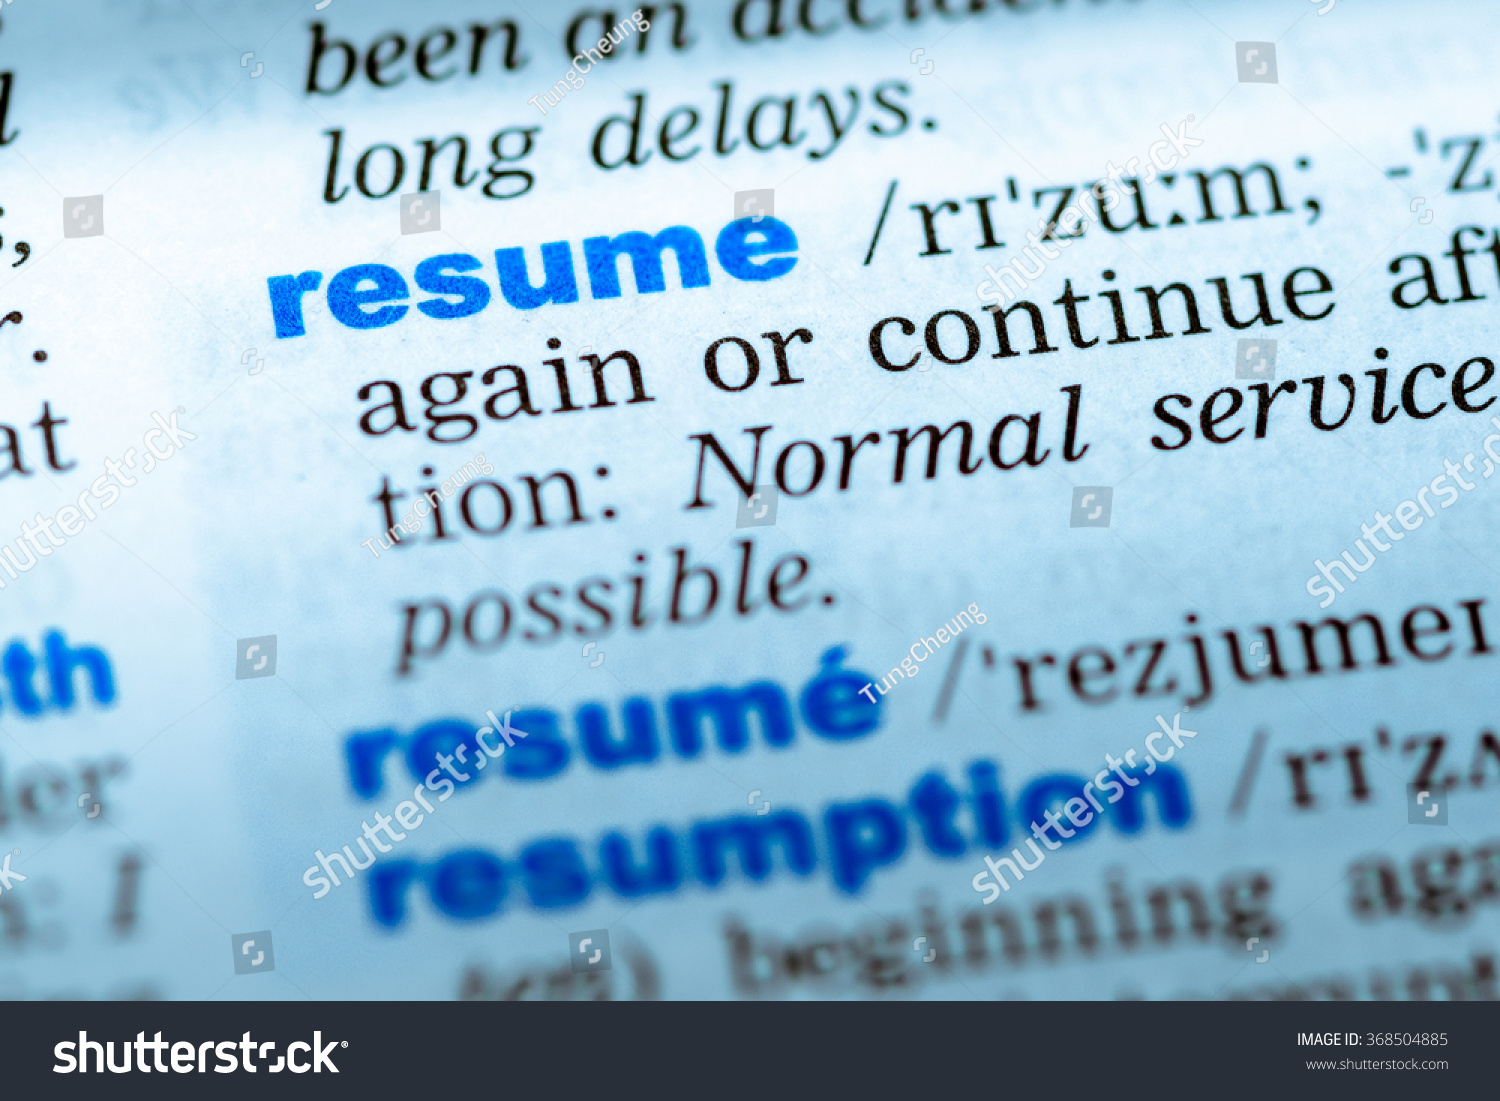 Royalty Free Close Up Of Word In English Dictionary 368504885